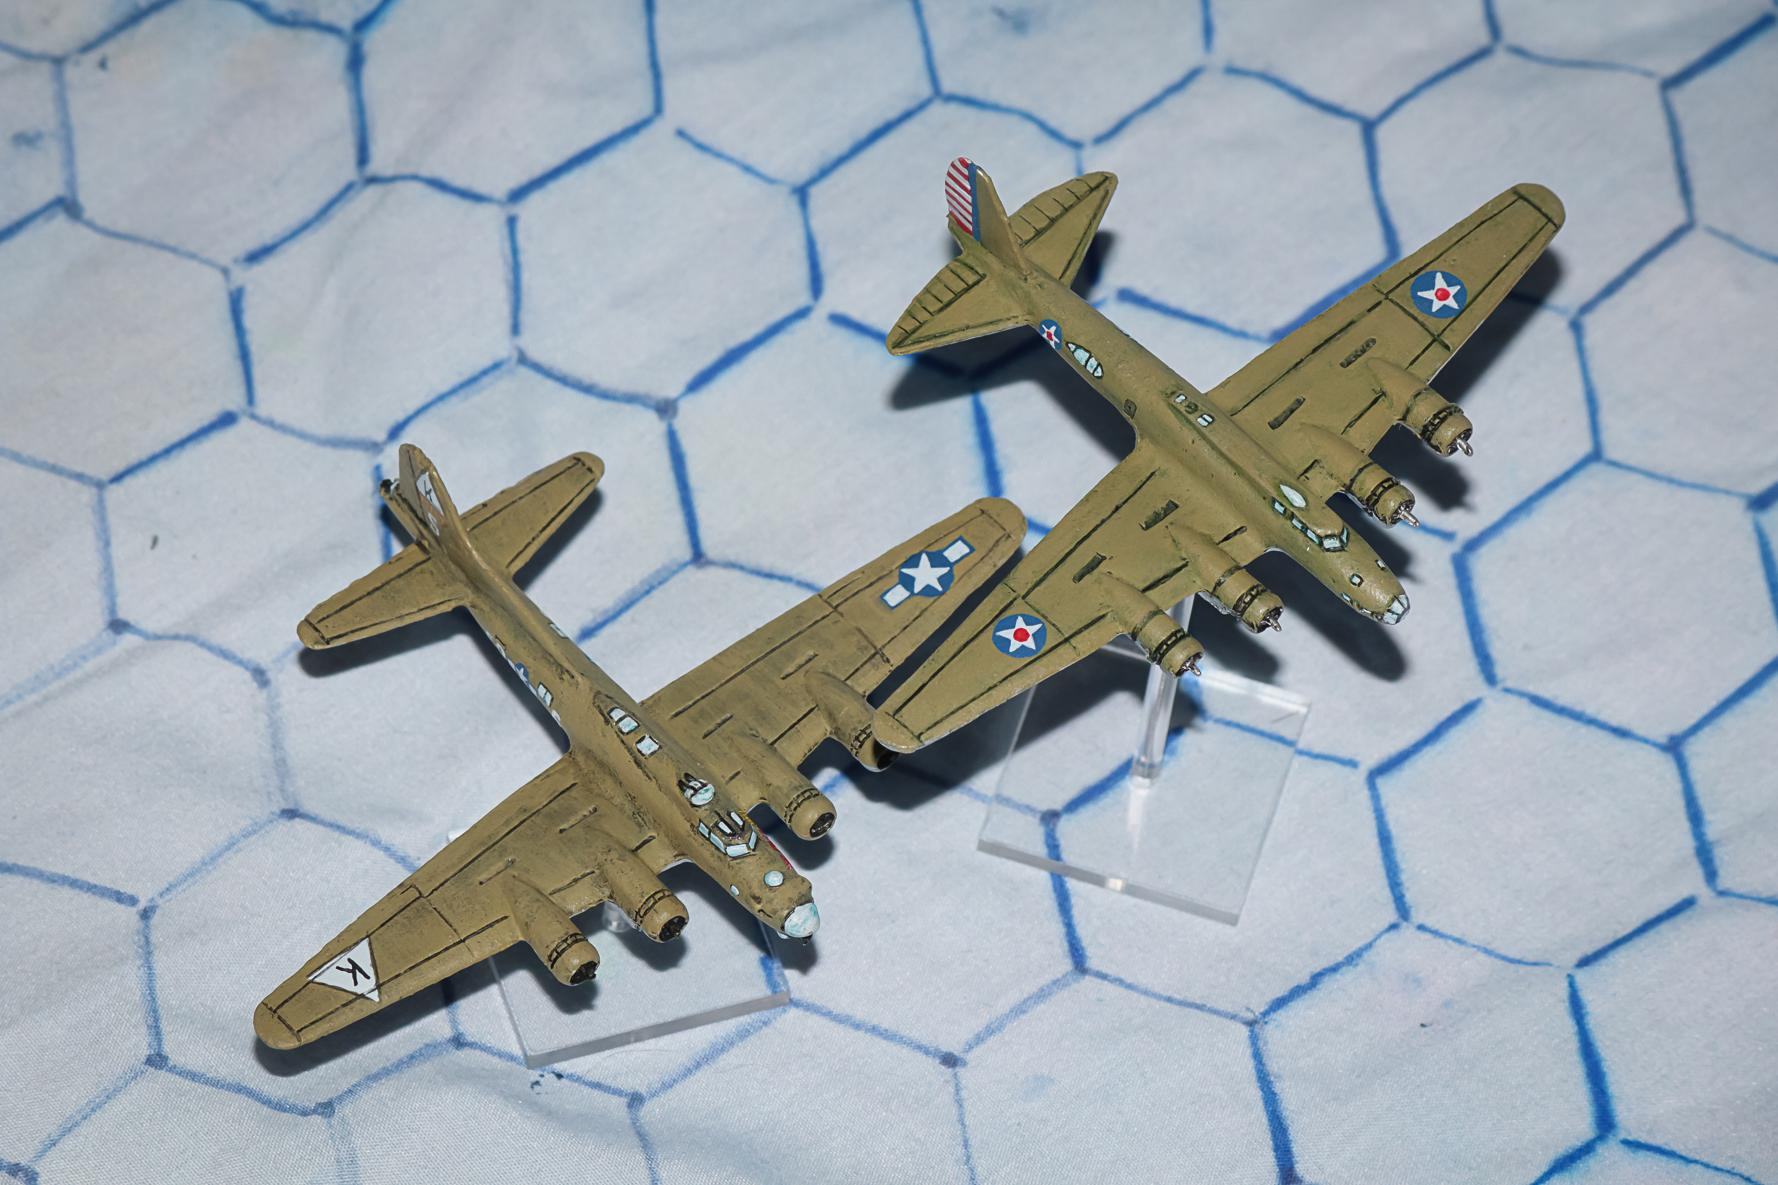 1:300 Scale, 6mm Scale, Air Combat, Airborne, Airplane, B-17, Bomber, Finland, Fliers, Flying, Fortress, French, Germans, Imperial Japan, Italian, Luftwaffe, Raf, Republic Of China, Soviet, Usaaf, World War 2